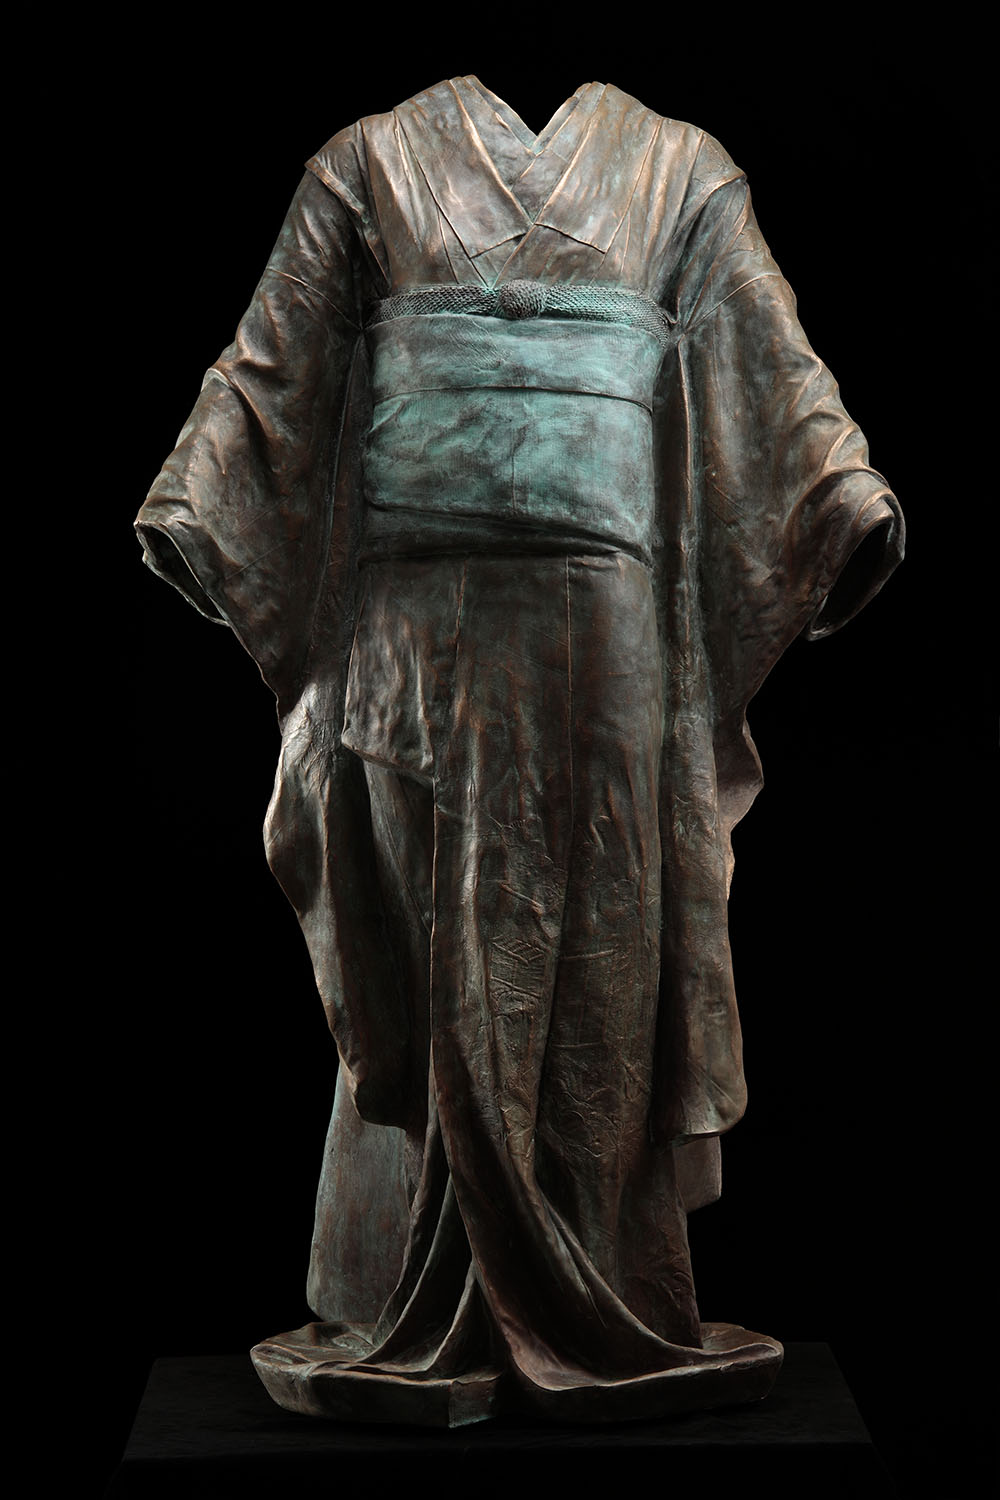 Maiko,  2011, 2/3, Bronze, 52 x 31 1/2 x 22 1/2 inches. Now on view at Gerald Peters Projects, Santa Fe.